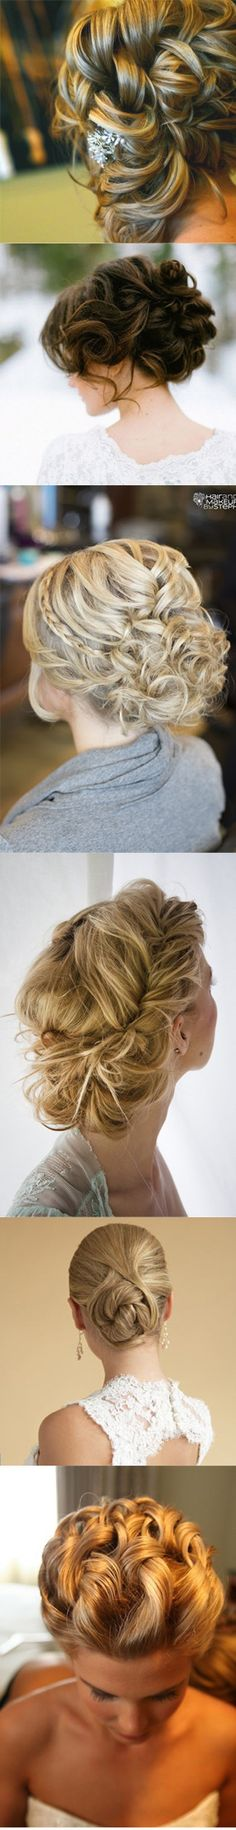 Bridal Updos - decorate them with hairvines, hairpins and slides, and combs. Love the braid in one of them